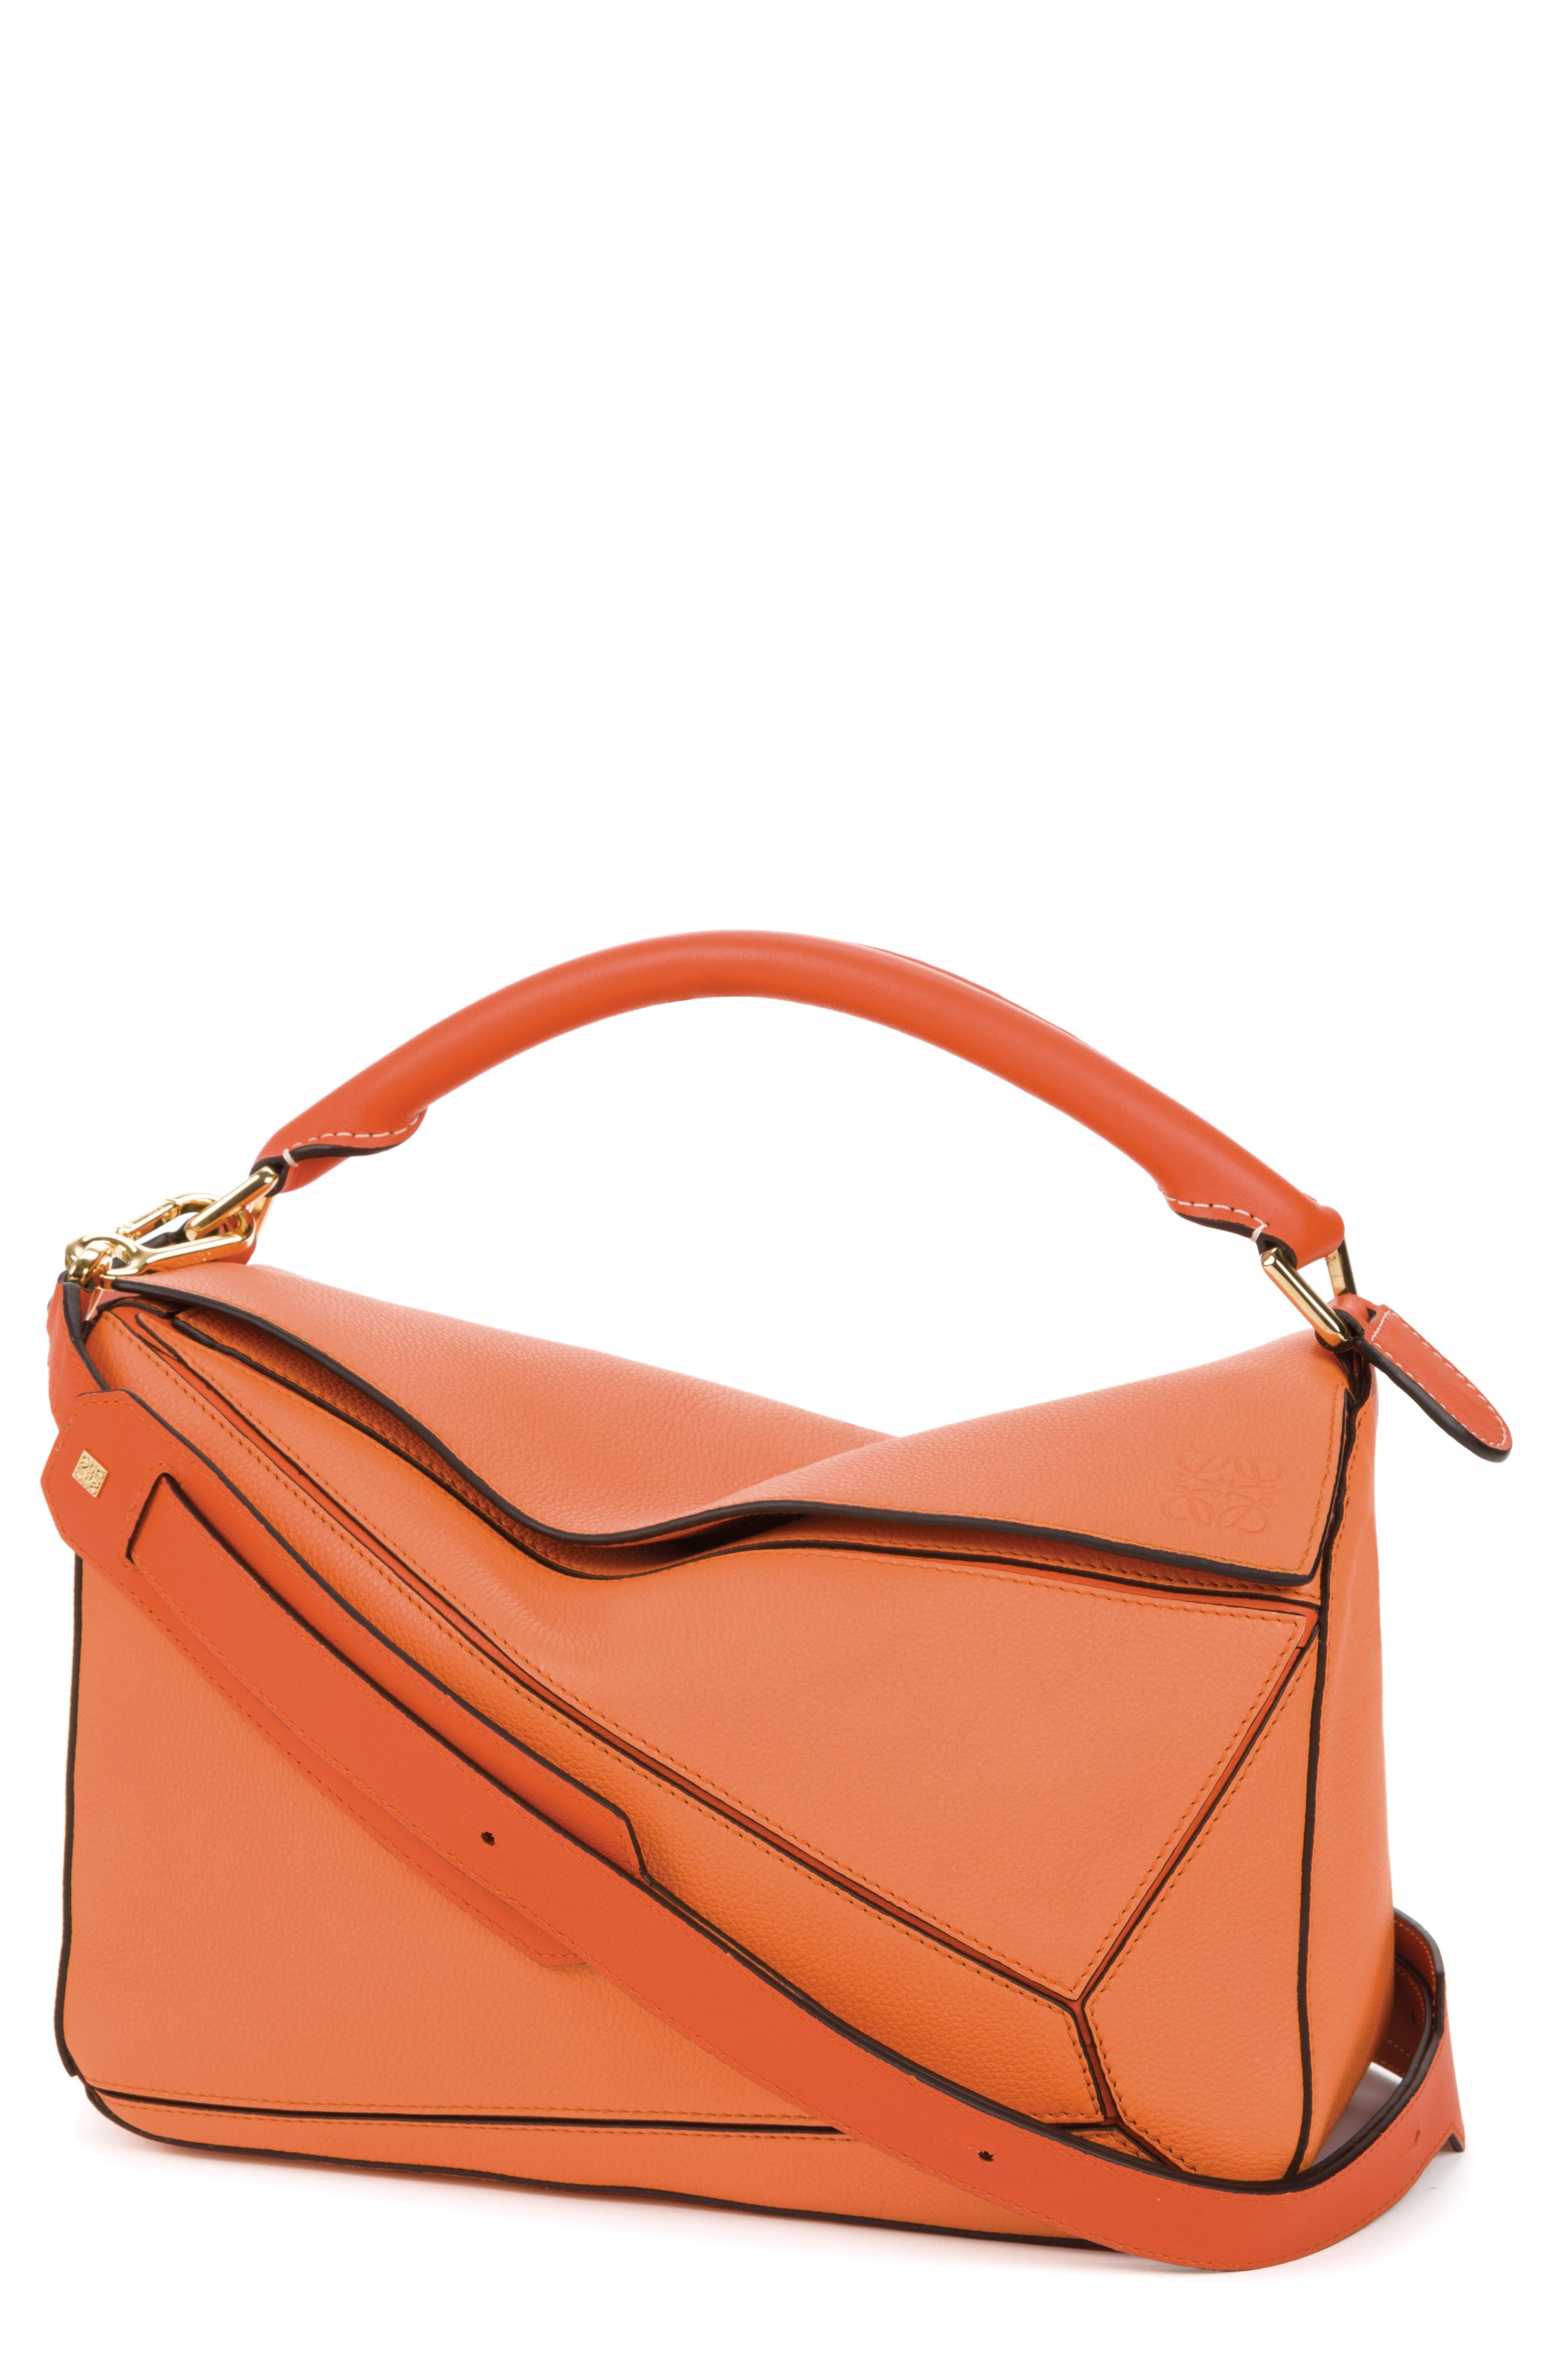 LOEWE Puzzle Calfskin Leather Bag